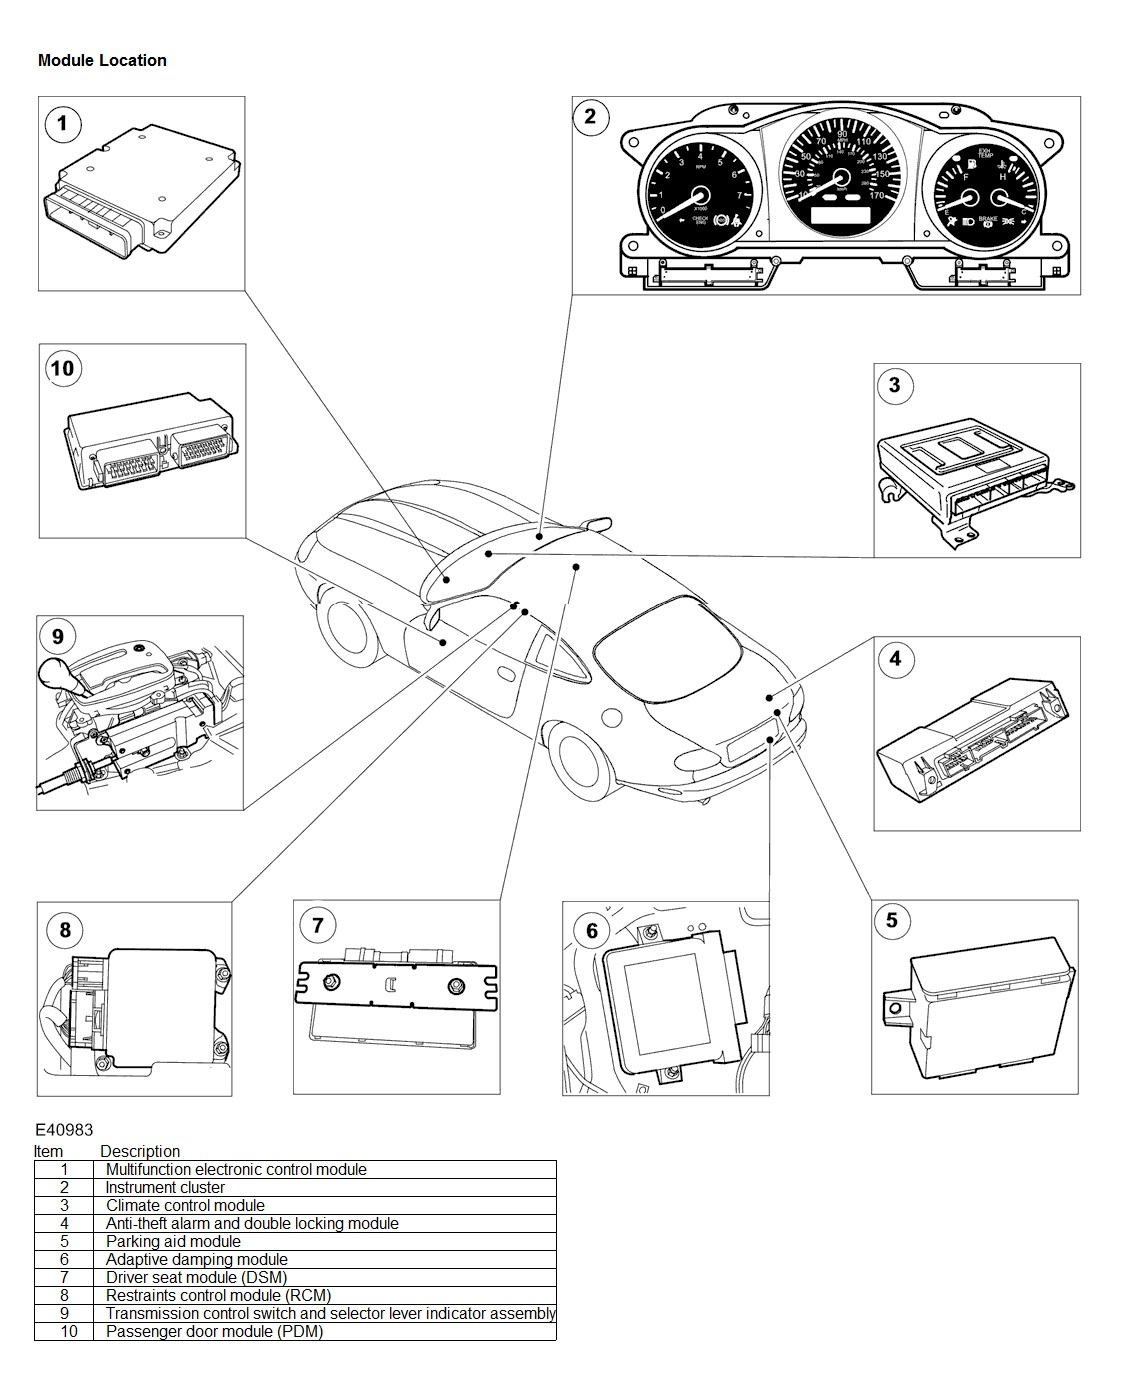 93677d1408607168-central-locking-problems-xk8-2005-modules-2 Jaguar Central Locking Wiring Diagram on jaguar mark 2, dish network receiver installation diagrams, jaguar e class, jaguar hardtop convertible, jaguar rear end, jaguar r type, jaguar fuel pump diagram, jaguar shooting brake, jaguar wagon, jaguar exhaust system, jaguar racing green, jaguar gt, jaguar 2 door, 2005 mini cooper parts diagrams, jaguar xk8 problems, jaguar mark x, jaguar parts diagrams, jaguar electrical diagrams, jaguar growler,